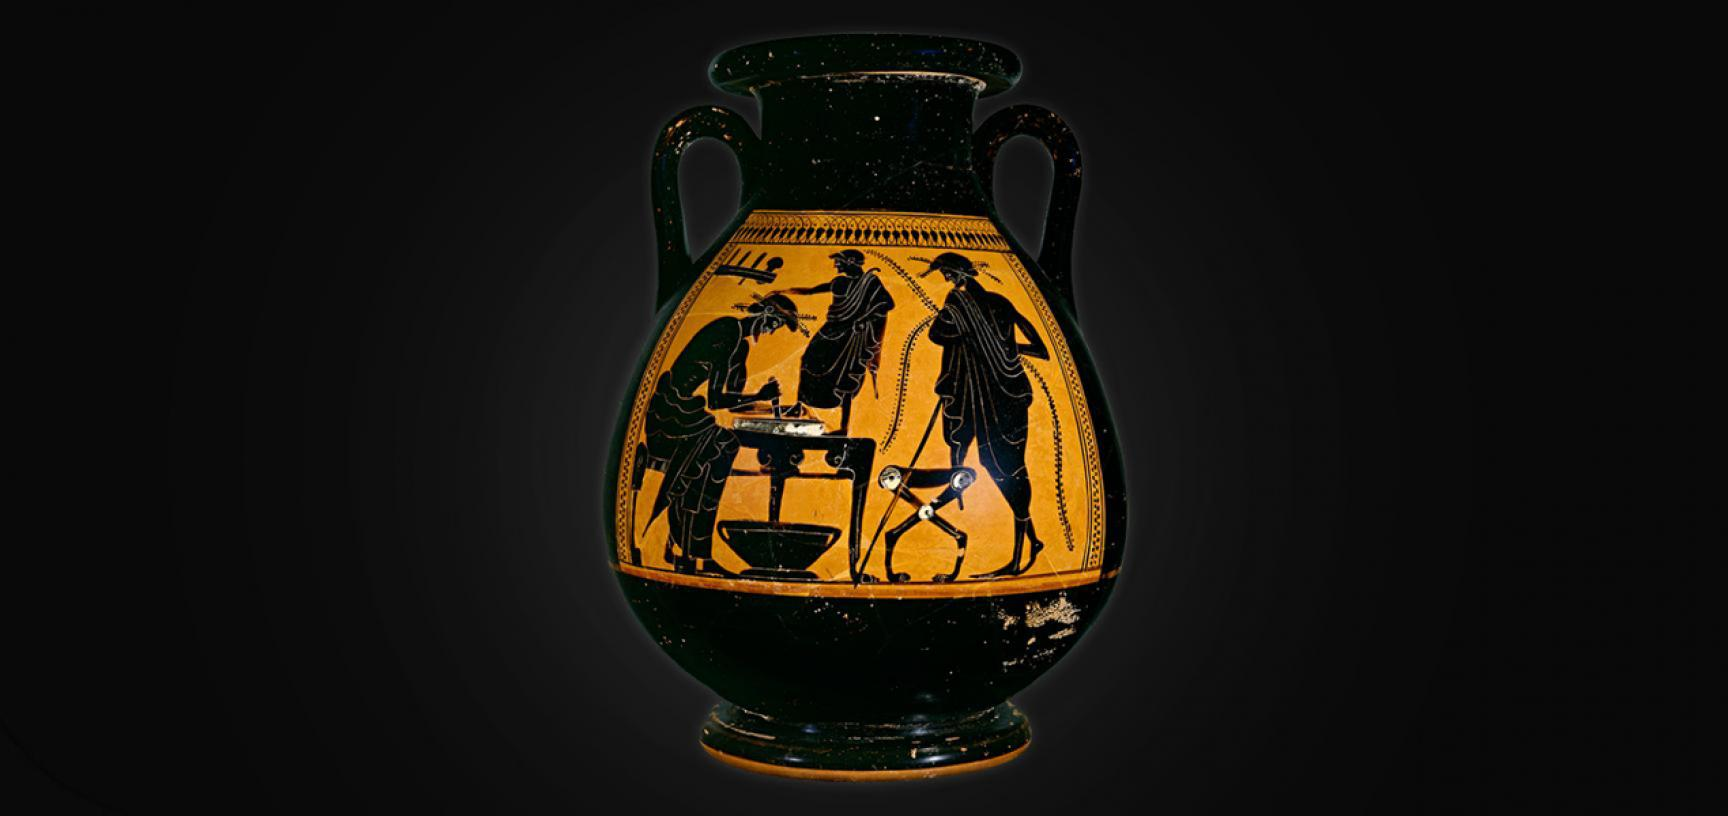 SHOEMAKER VASE from the Ashmolean collections